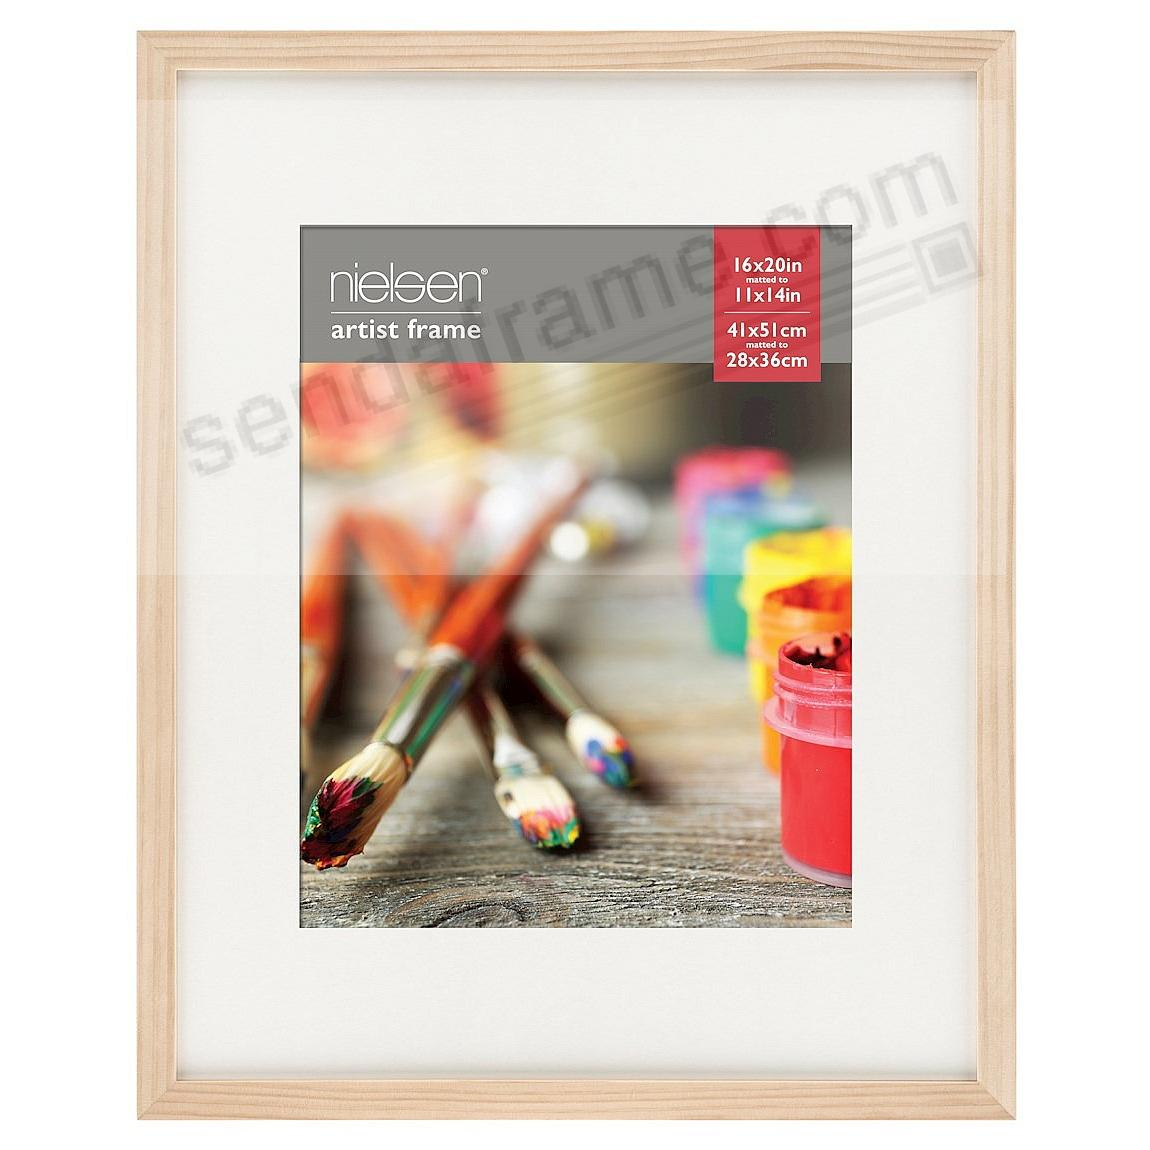 Ash Natural GALLERY-CANVAS DEPTH matted wood frame 16x20/11x14 by ...